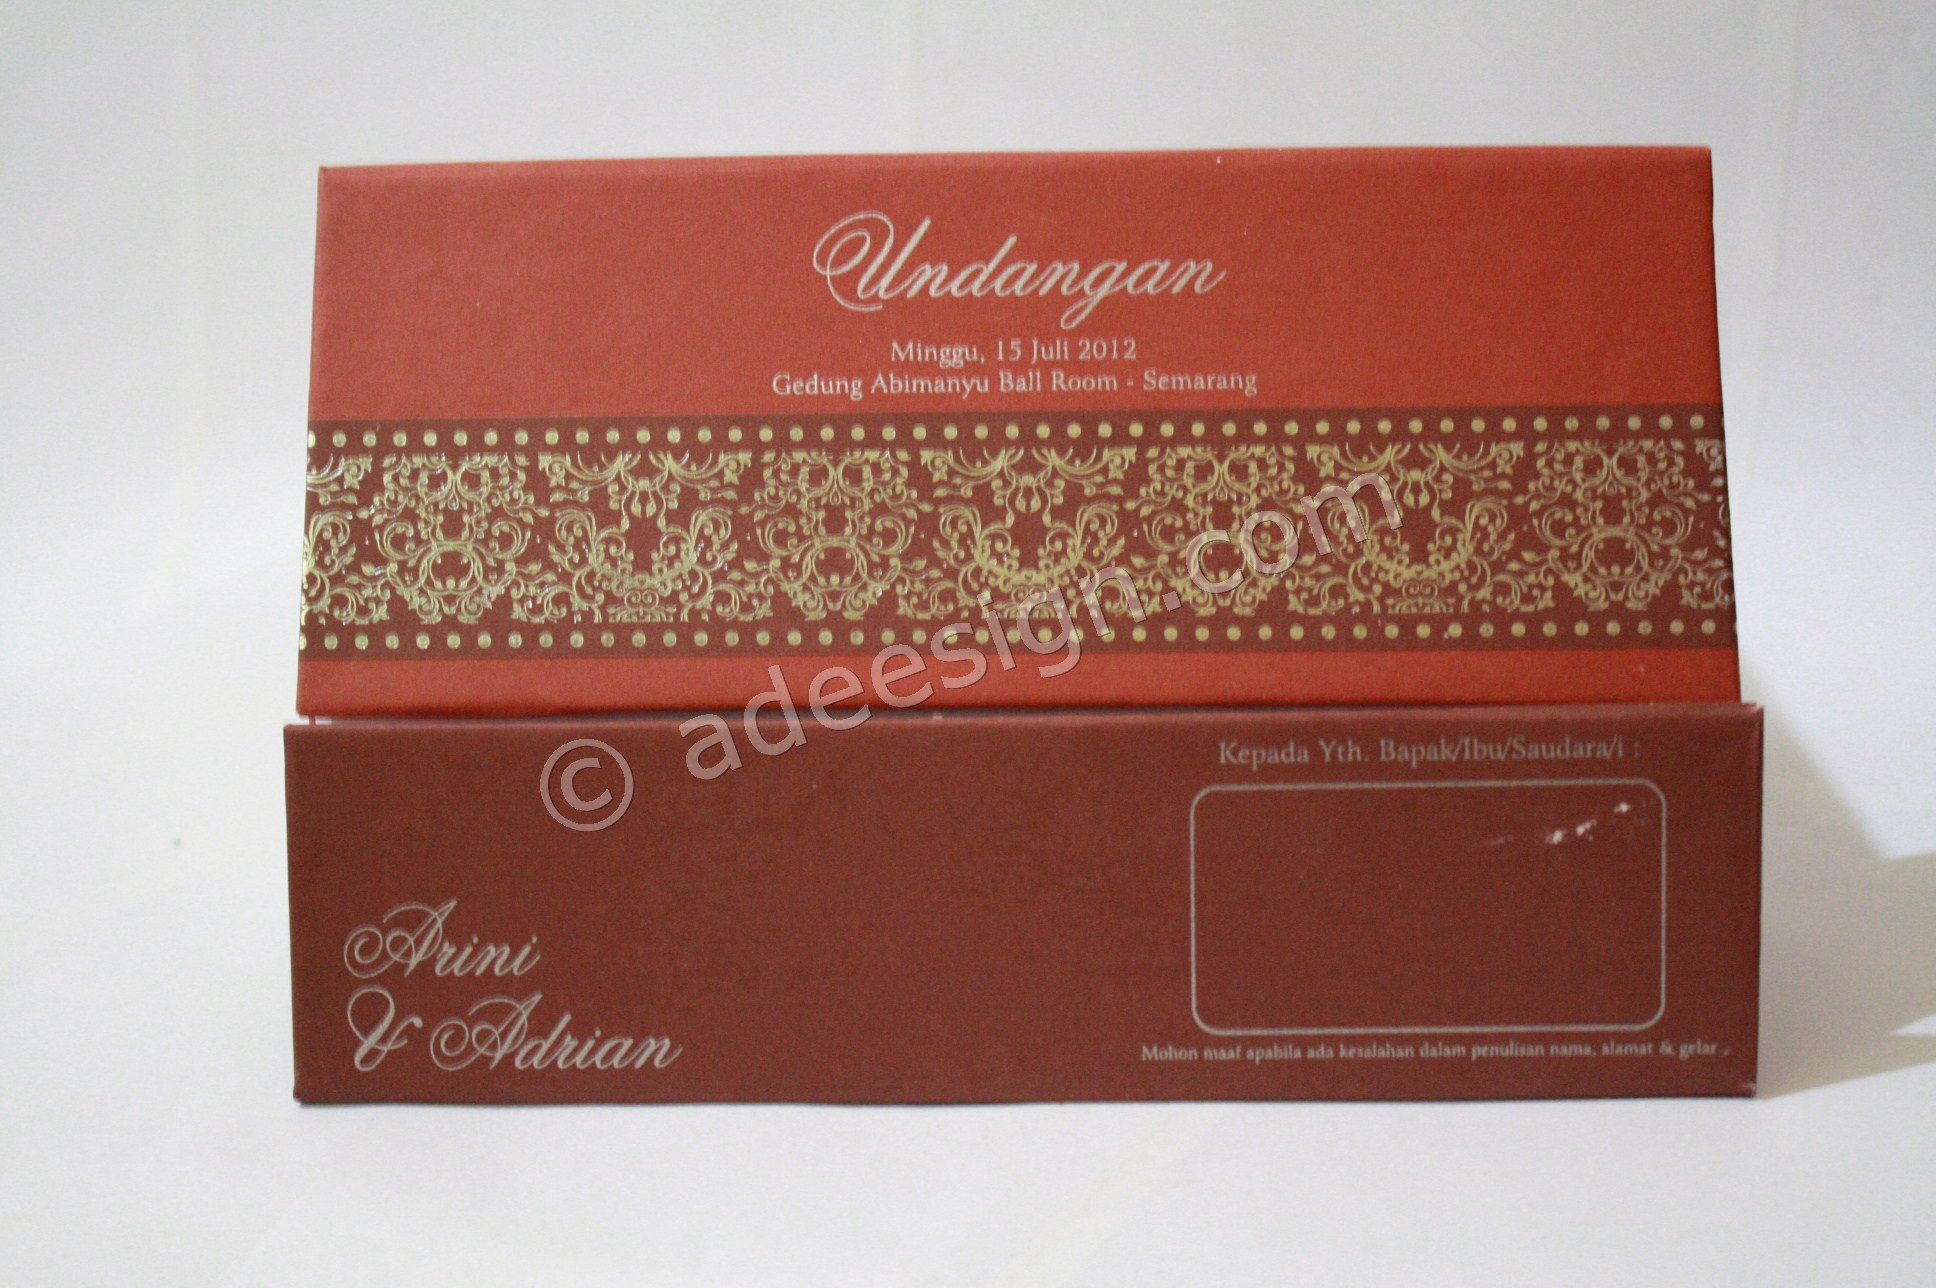 Kartu Undangan Pernikahan Hard Cover Arini dan Adrian 3 - Pesan Wedding Invitations Simple di Jambangan Karah